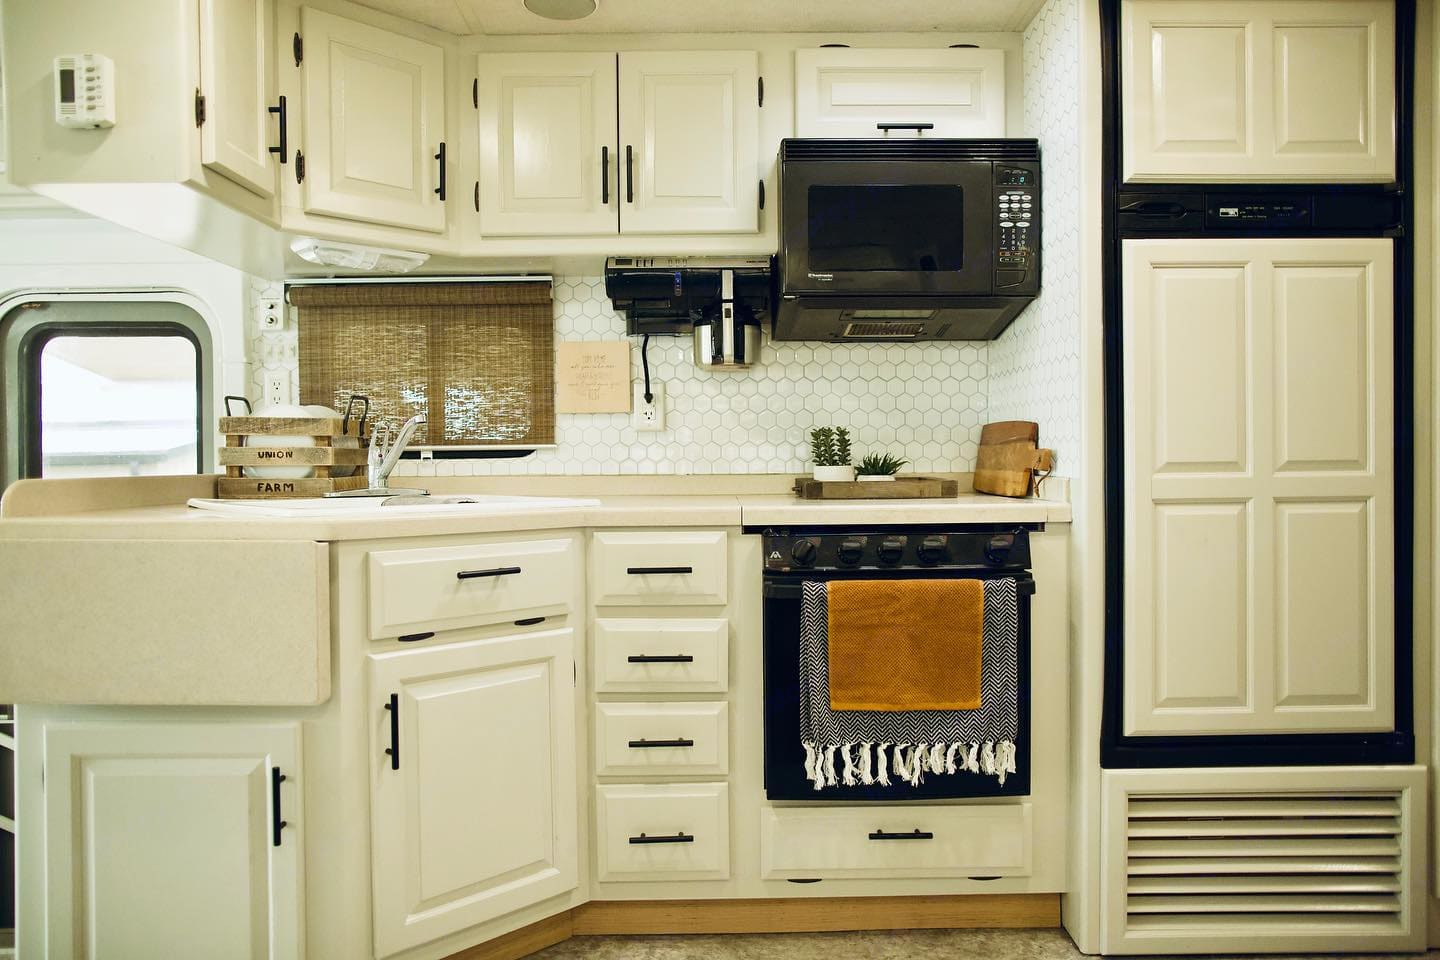 kitchen - oven, stove, coffee pot, microwave. Newmar Scottsdale 2003